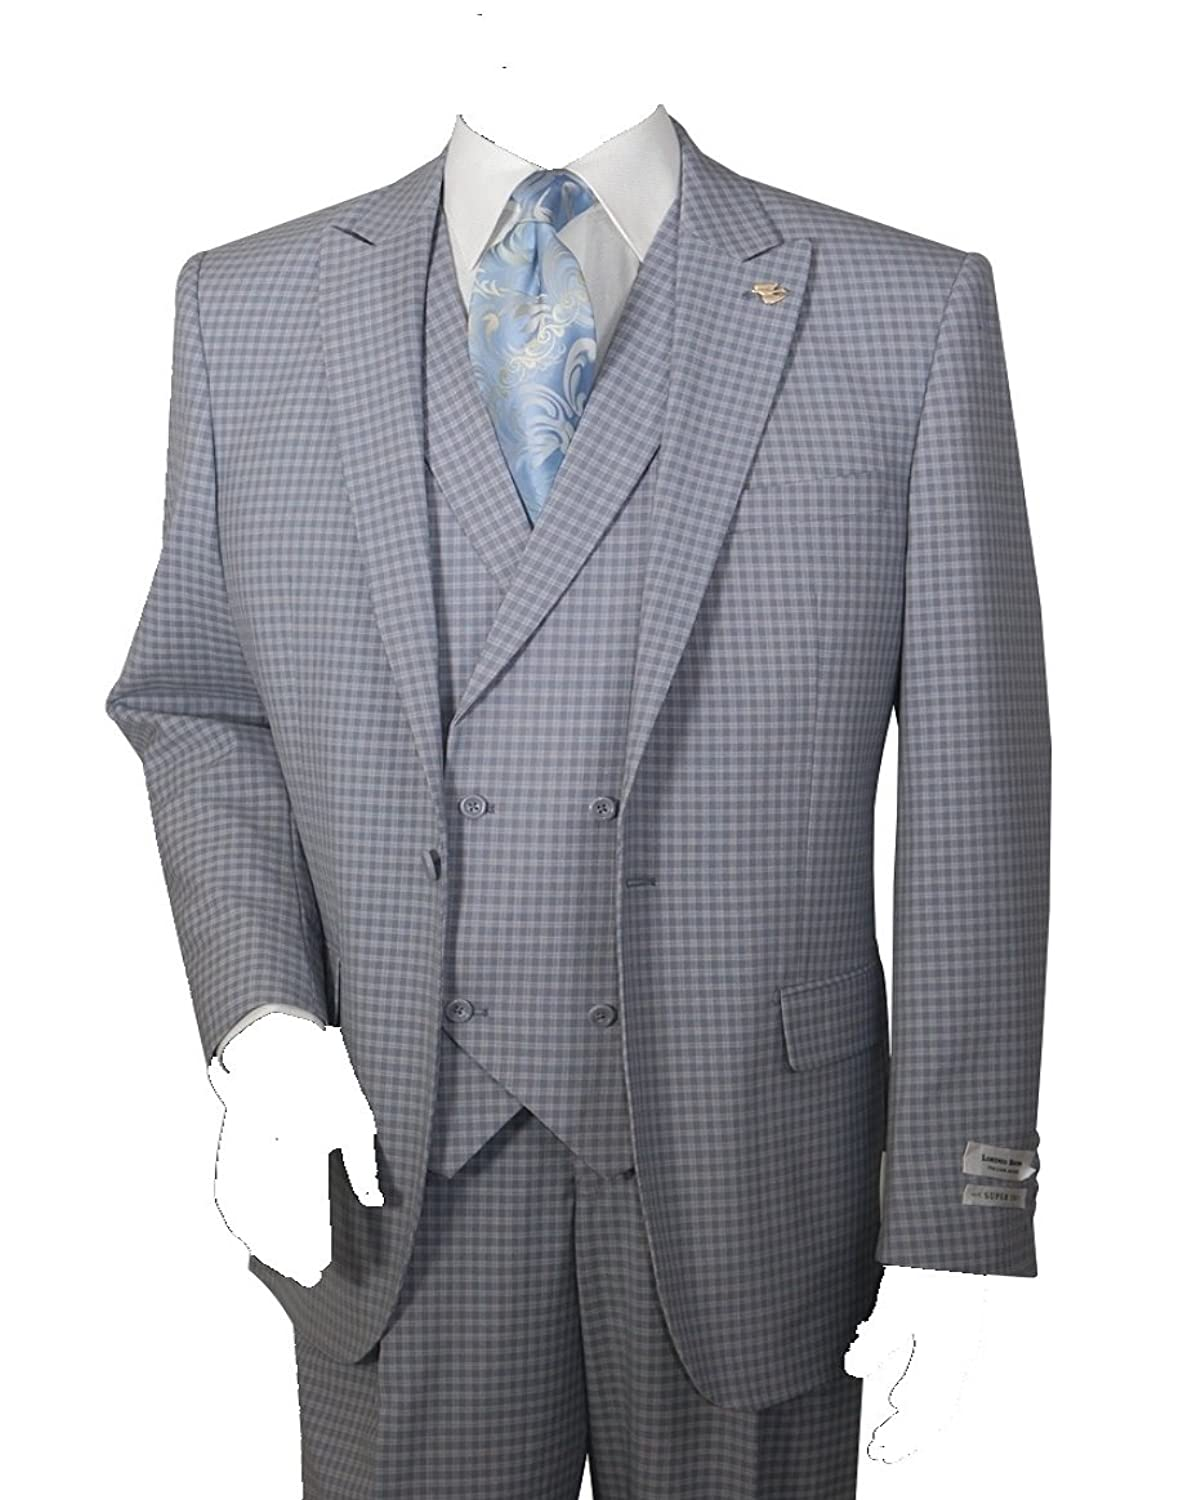 Men's Vintage Style Suits, Classic Suits Mens 3 Piece Single Button Mini-Plaid Pattern Suit (Gray) $149.99 AT vintagedancer.com